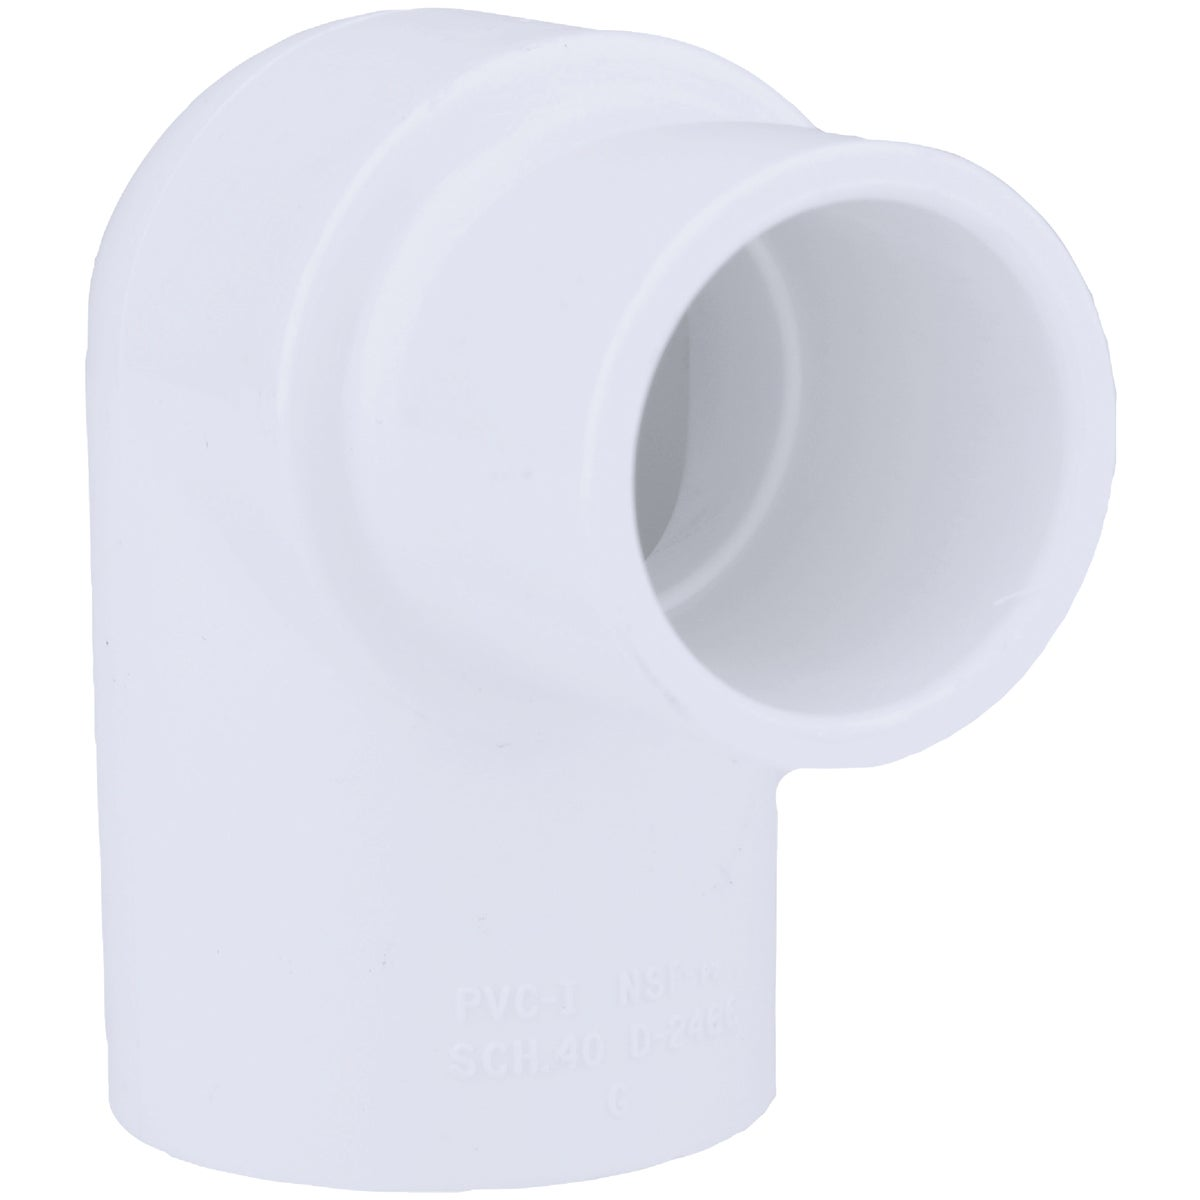 1X3/4 90D S40 PVC ELBOW - 30717 by Genova Inc